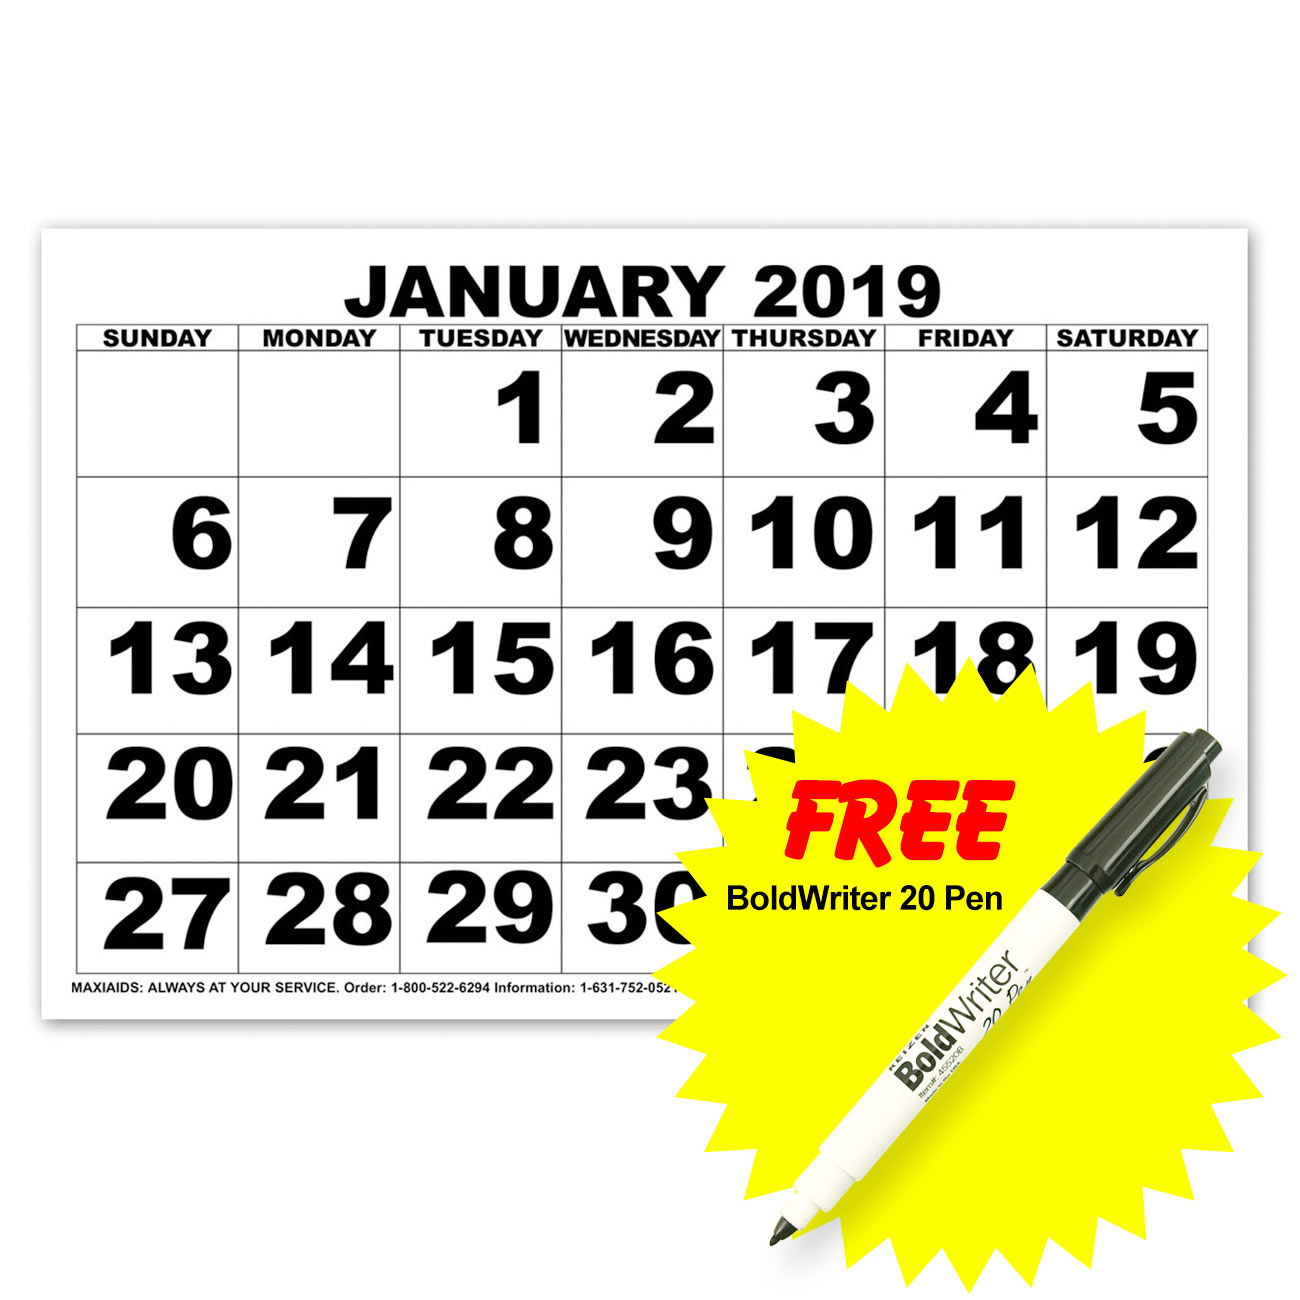 Low Vision Print Calendar - 2019 with BoldWriter 20 Pen